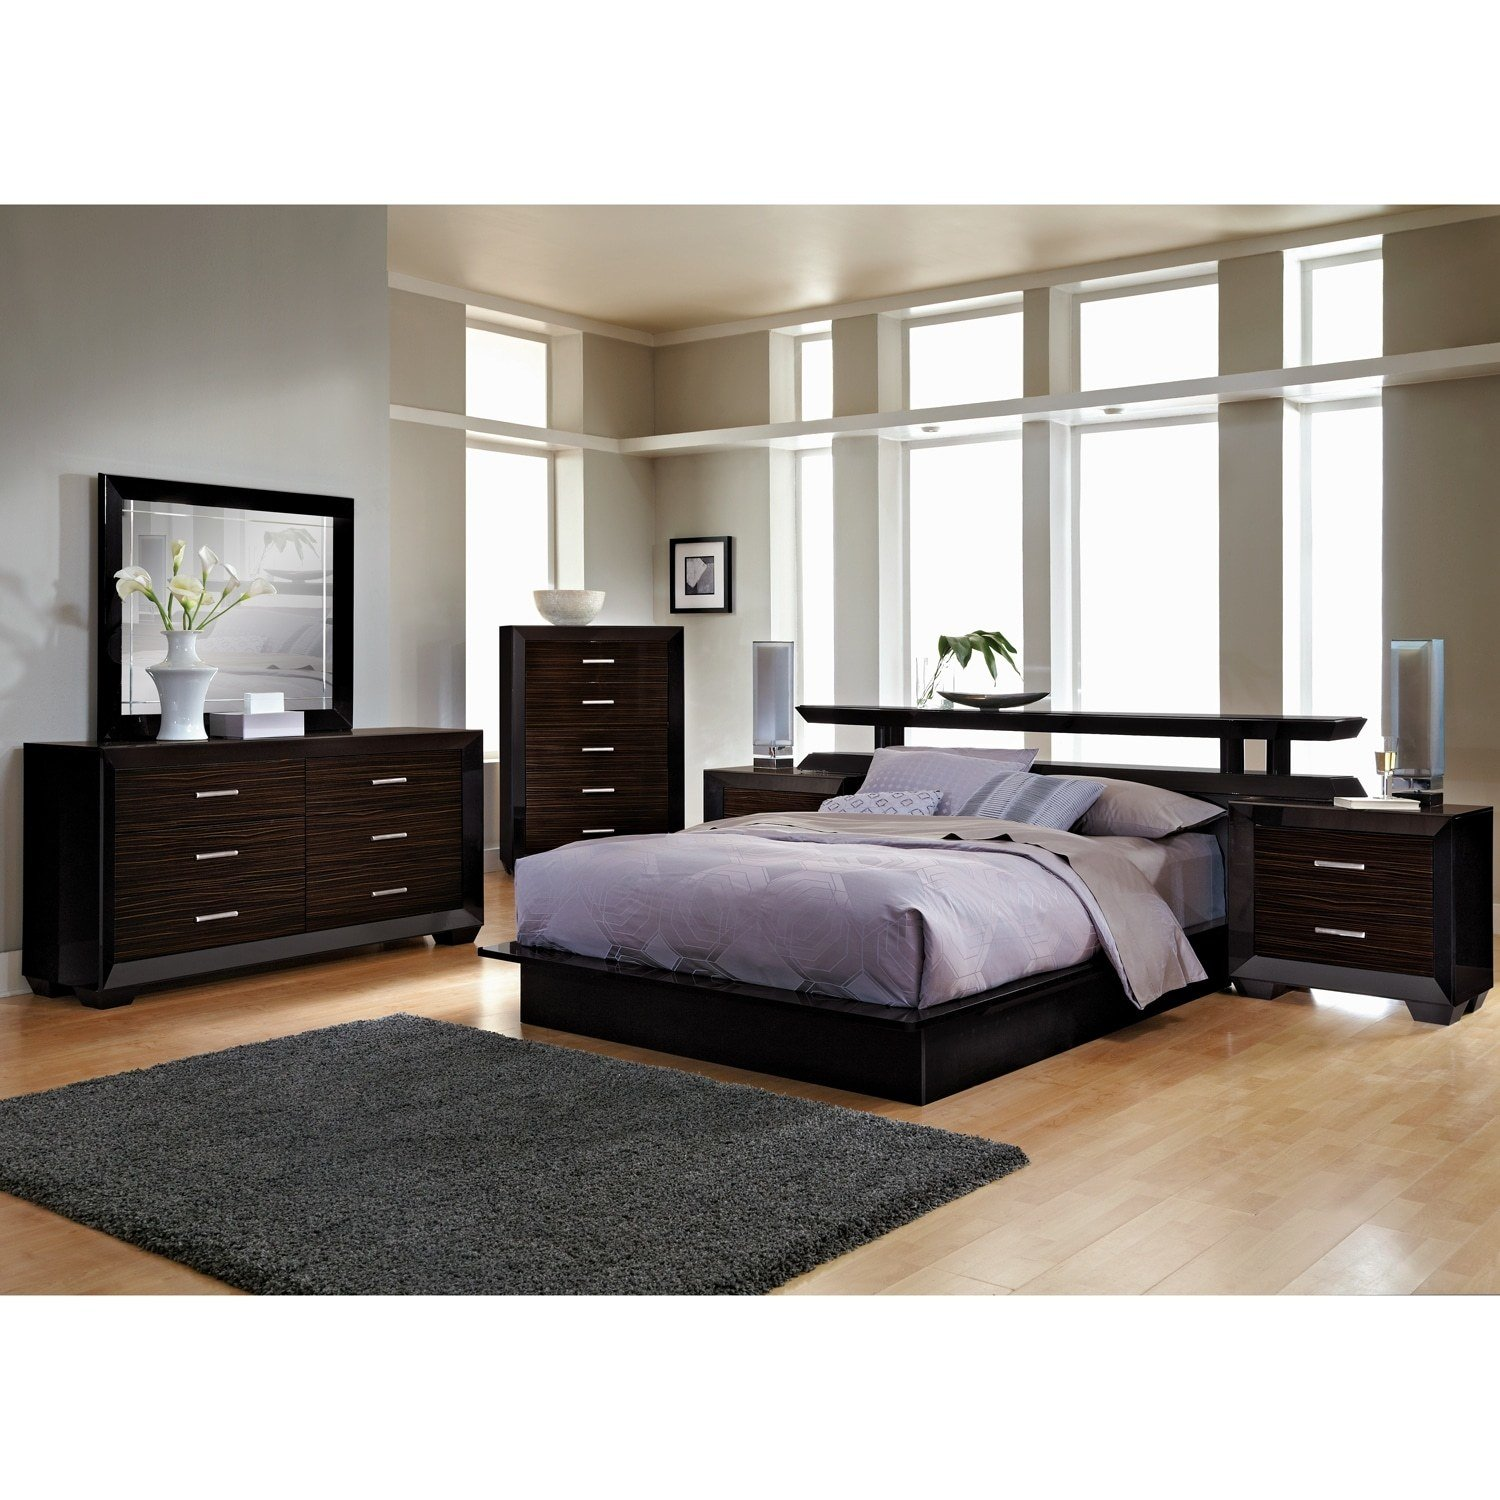 Best Top Photo Of Bedroom Outlet Patricia Woodard With Pictures